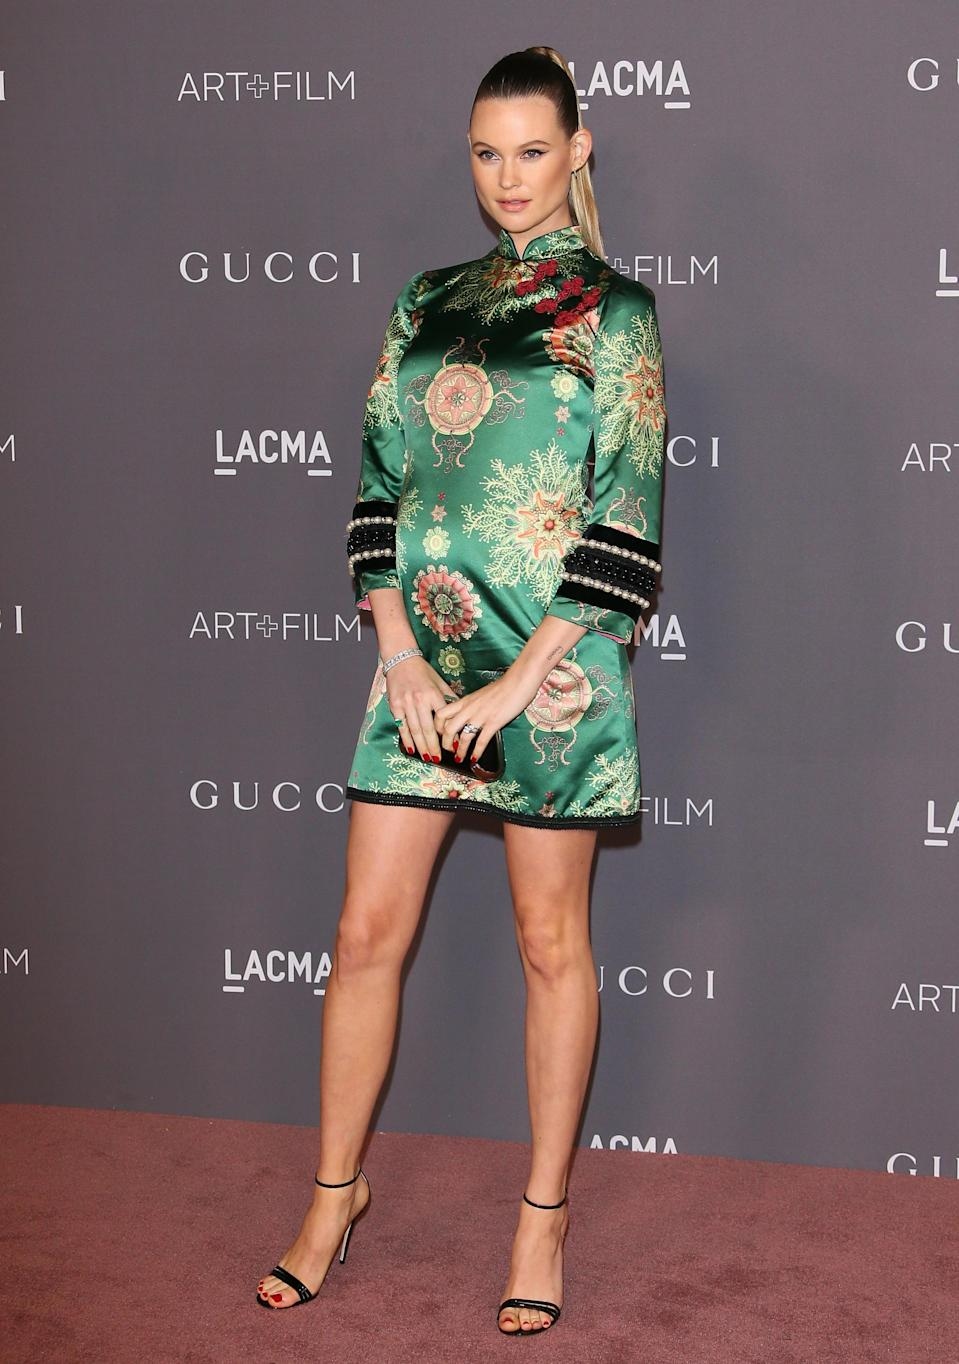 Behati Prinsloo at the LACMA Art + Film Gala 2017. (Photo: Getty Images)